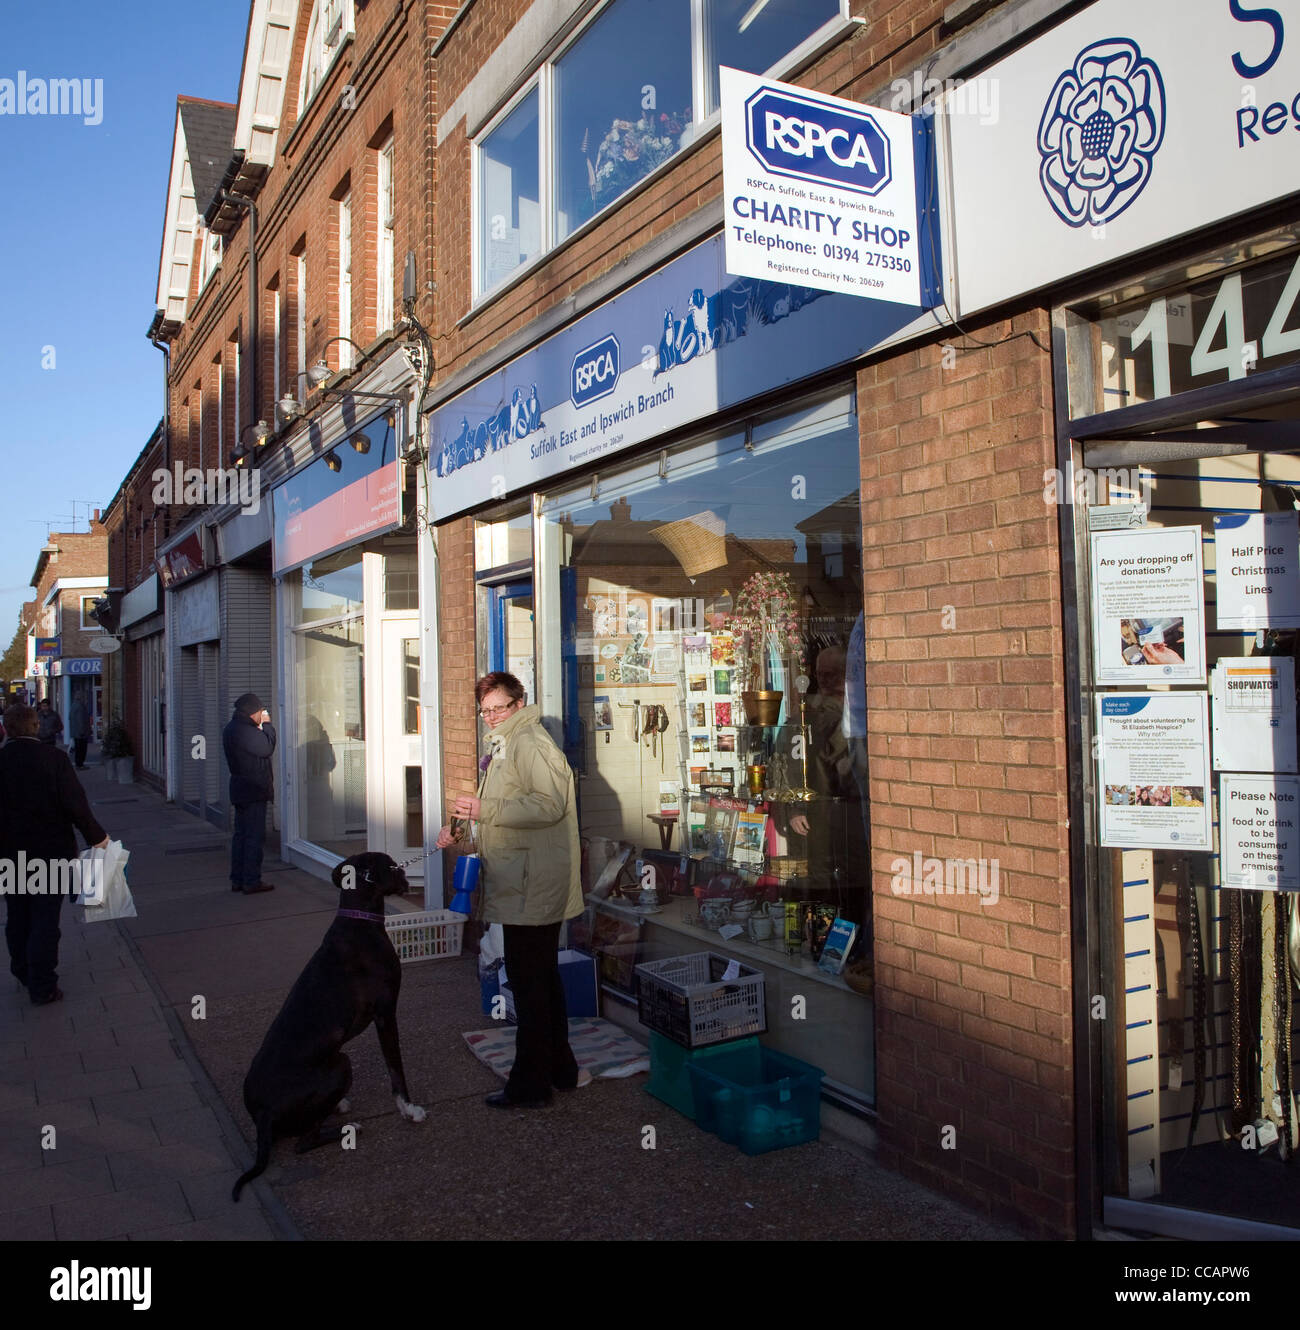 RSPCA charity shop and woman collecting money with dog - Stock Image